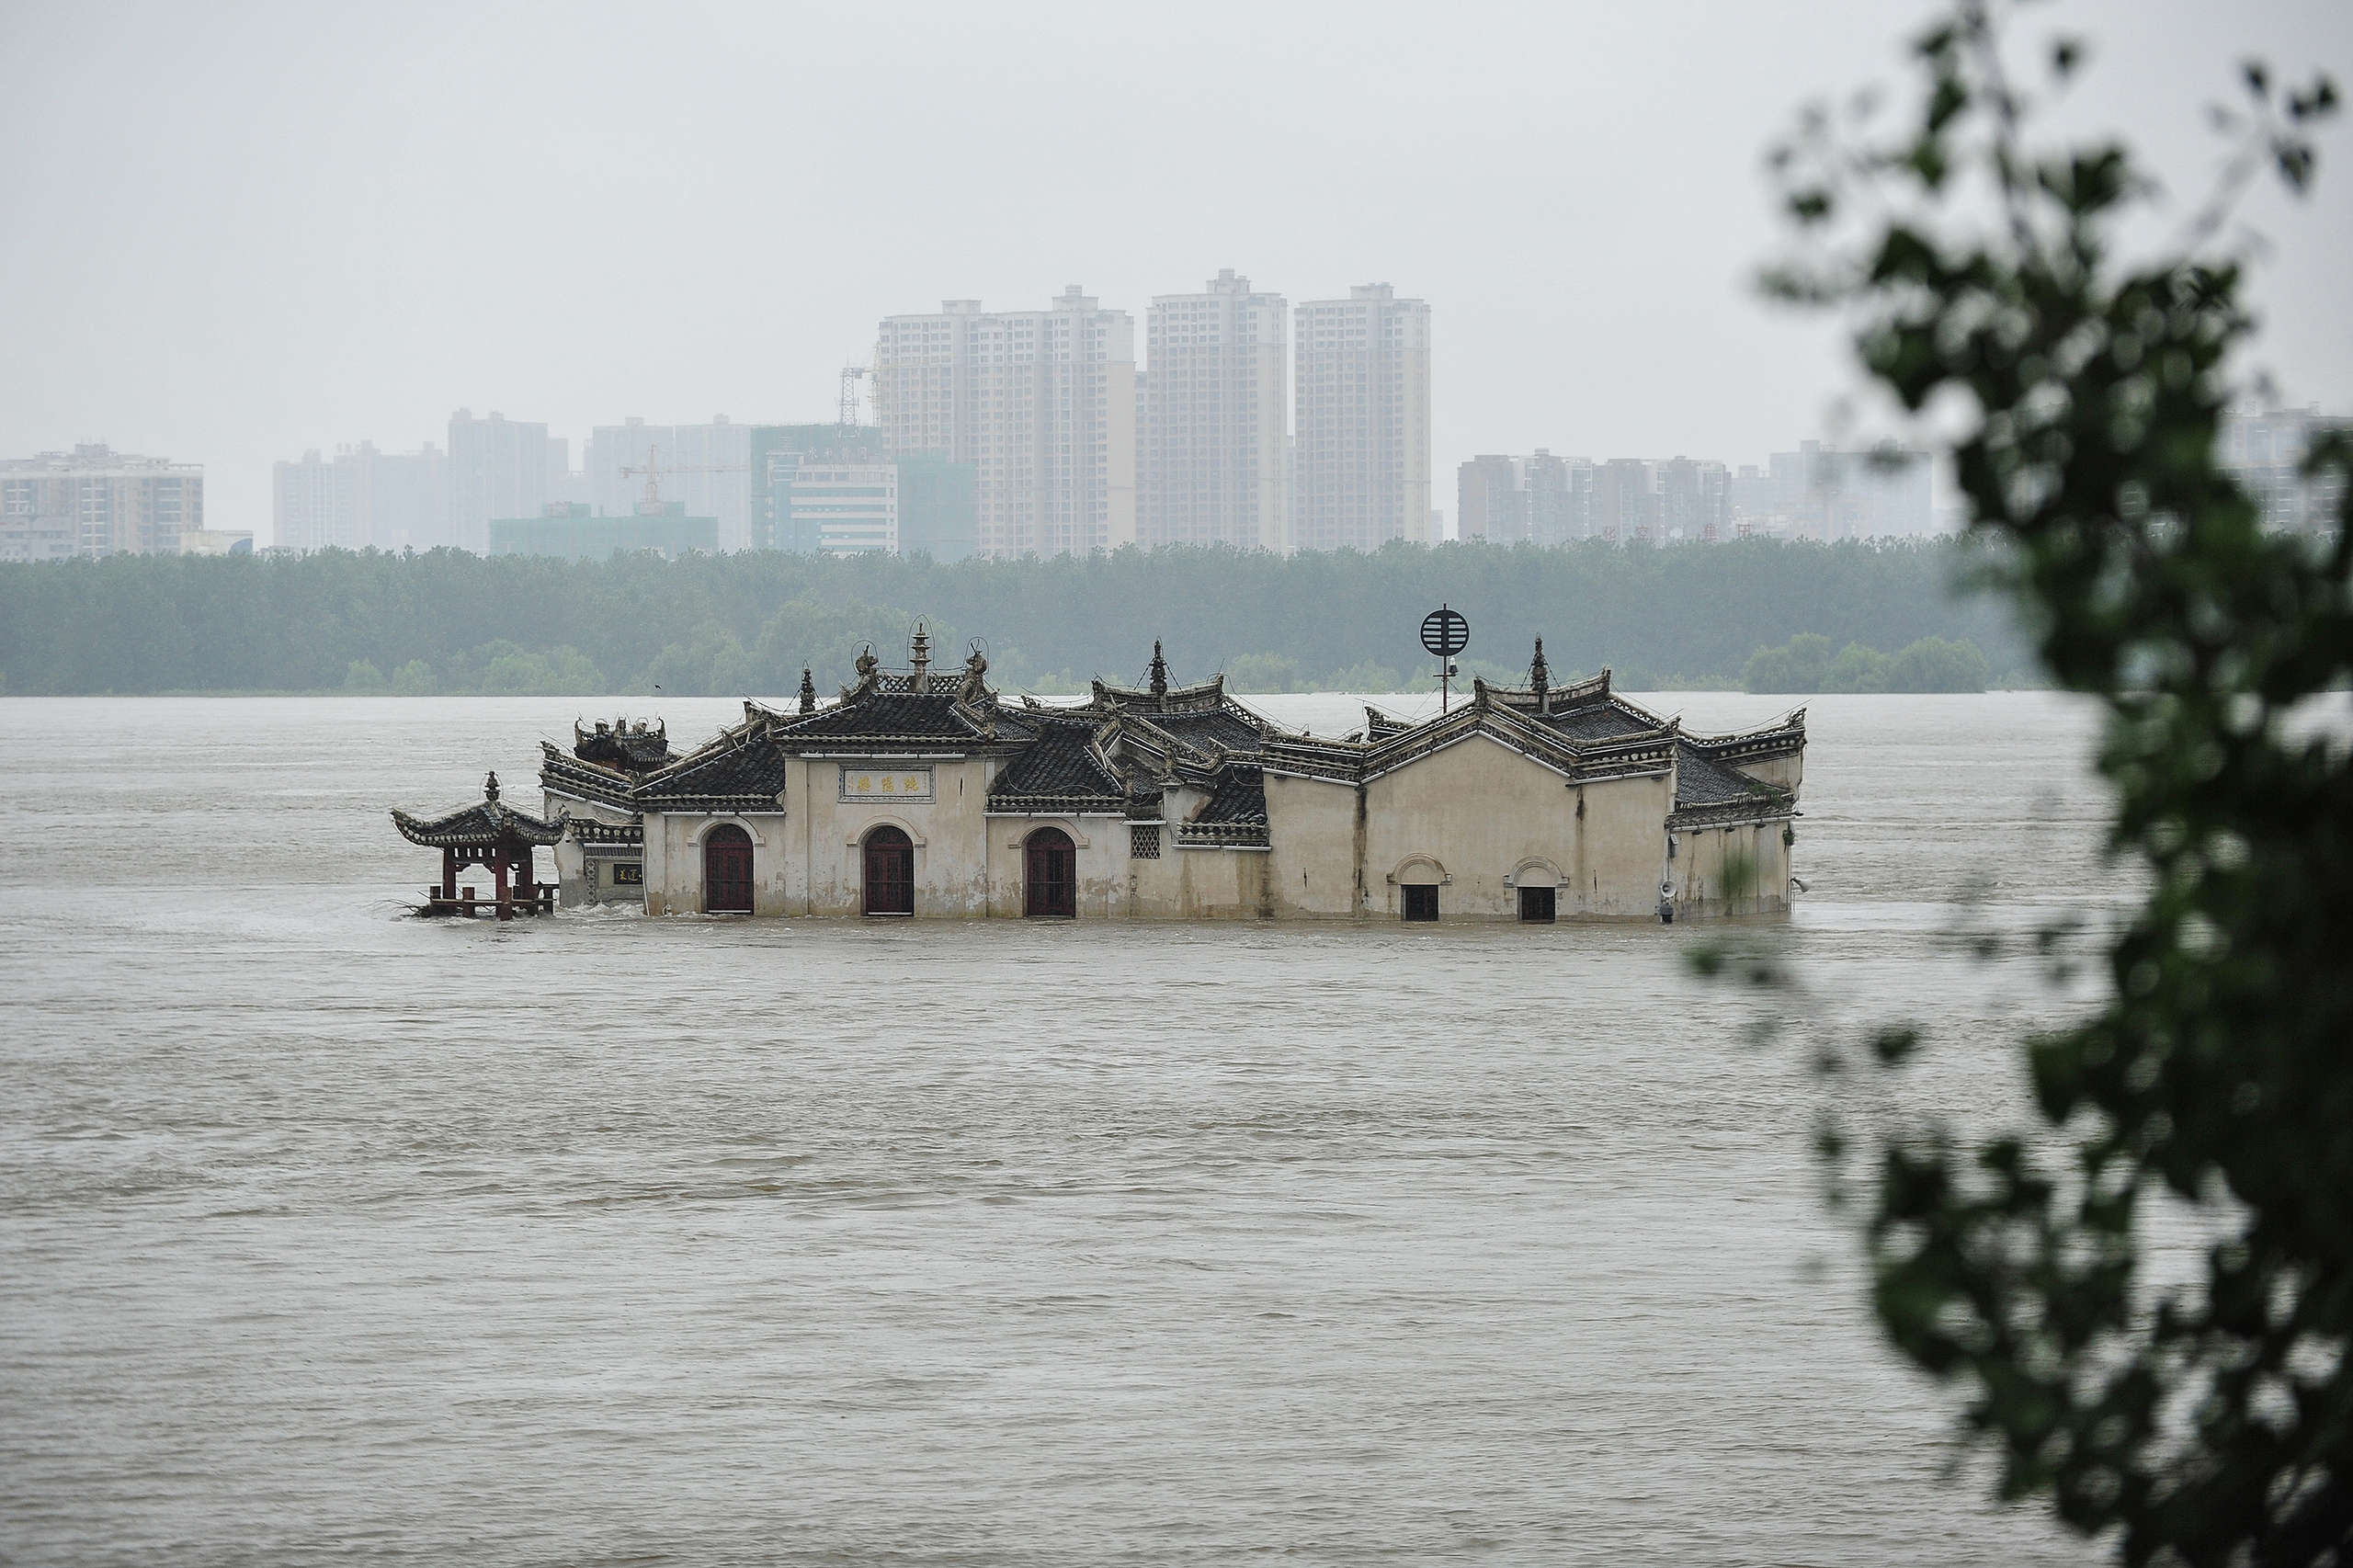 The Guanyinge temple, a 700-year old temple built on a rock, in the swollen Yangtze River in Wuhan in China's central Hubei province. - Heavy rains since June have left at least 141 people dead and missing, forced nearly 15 million people to be evacuated from their homes in July alone. © STR/AFP / Getty Images